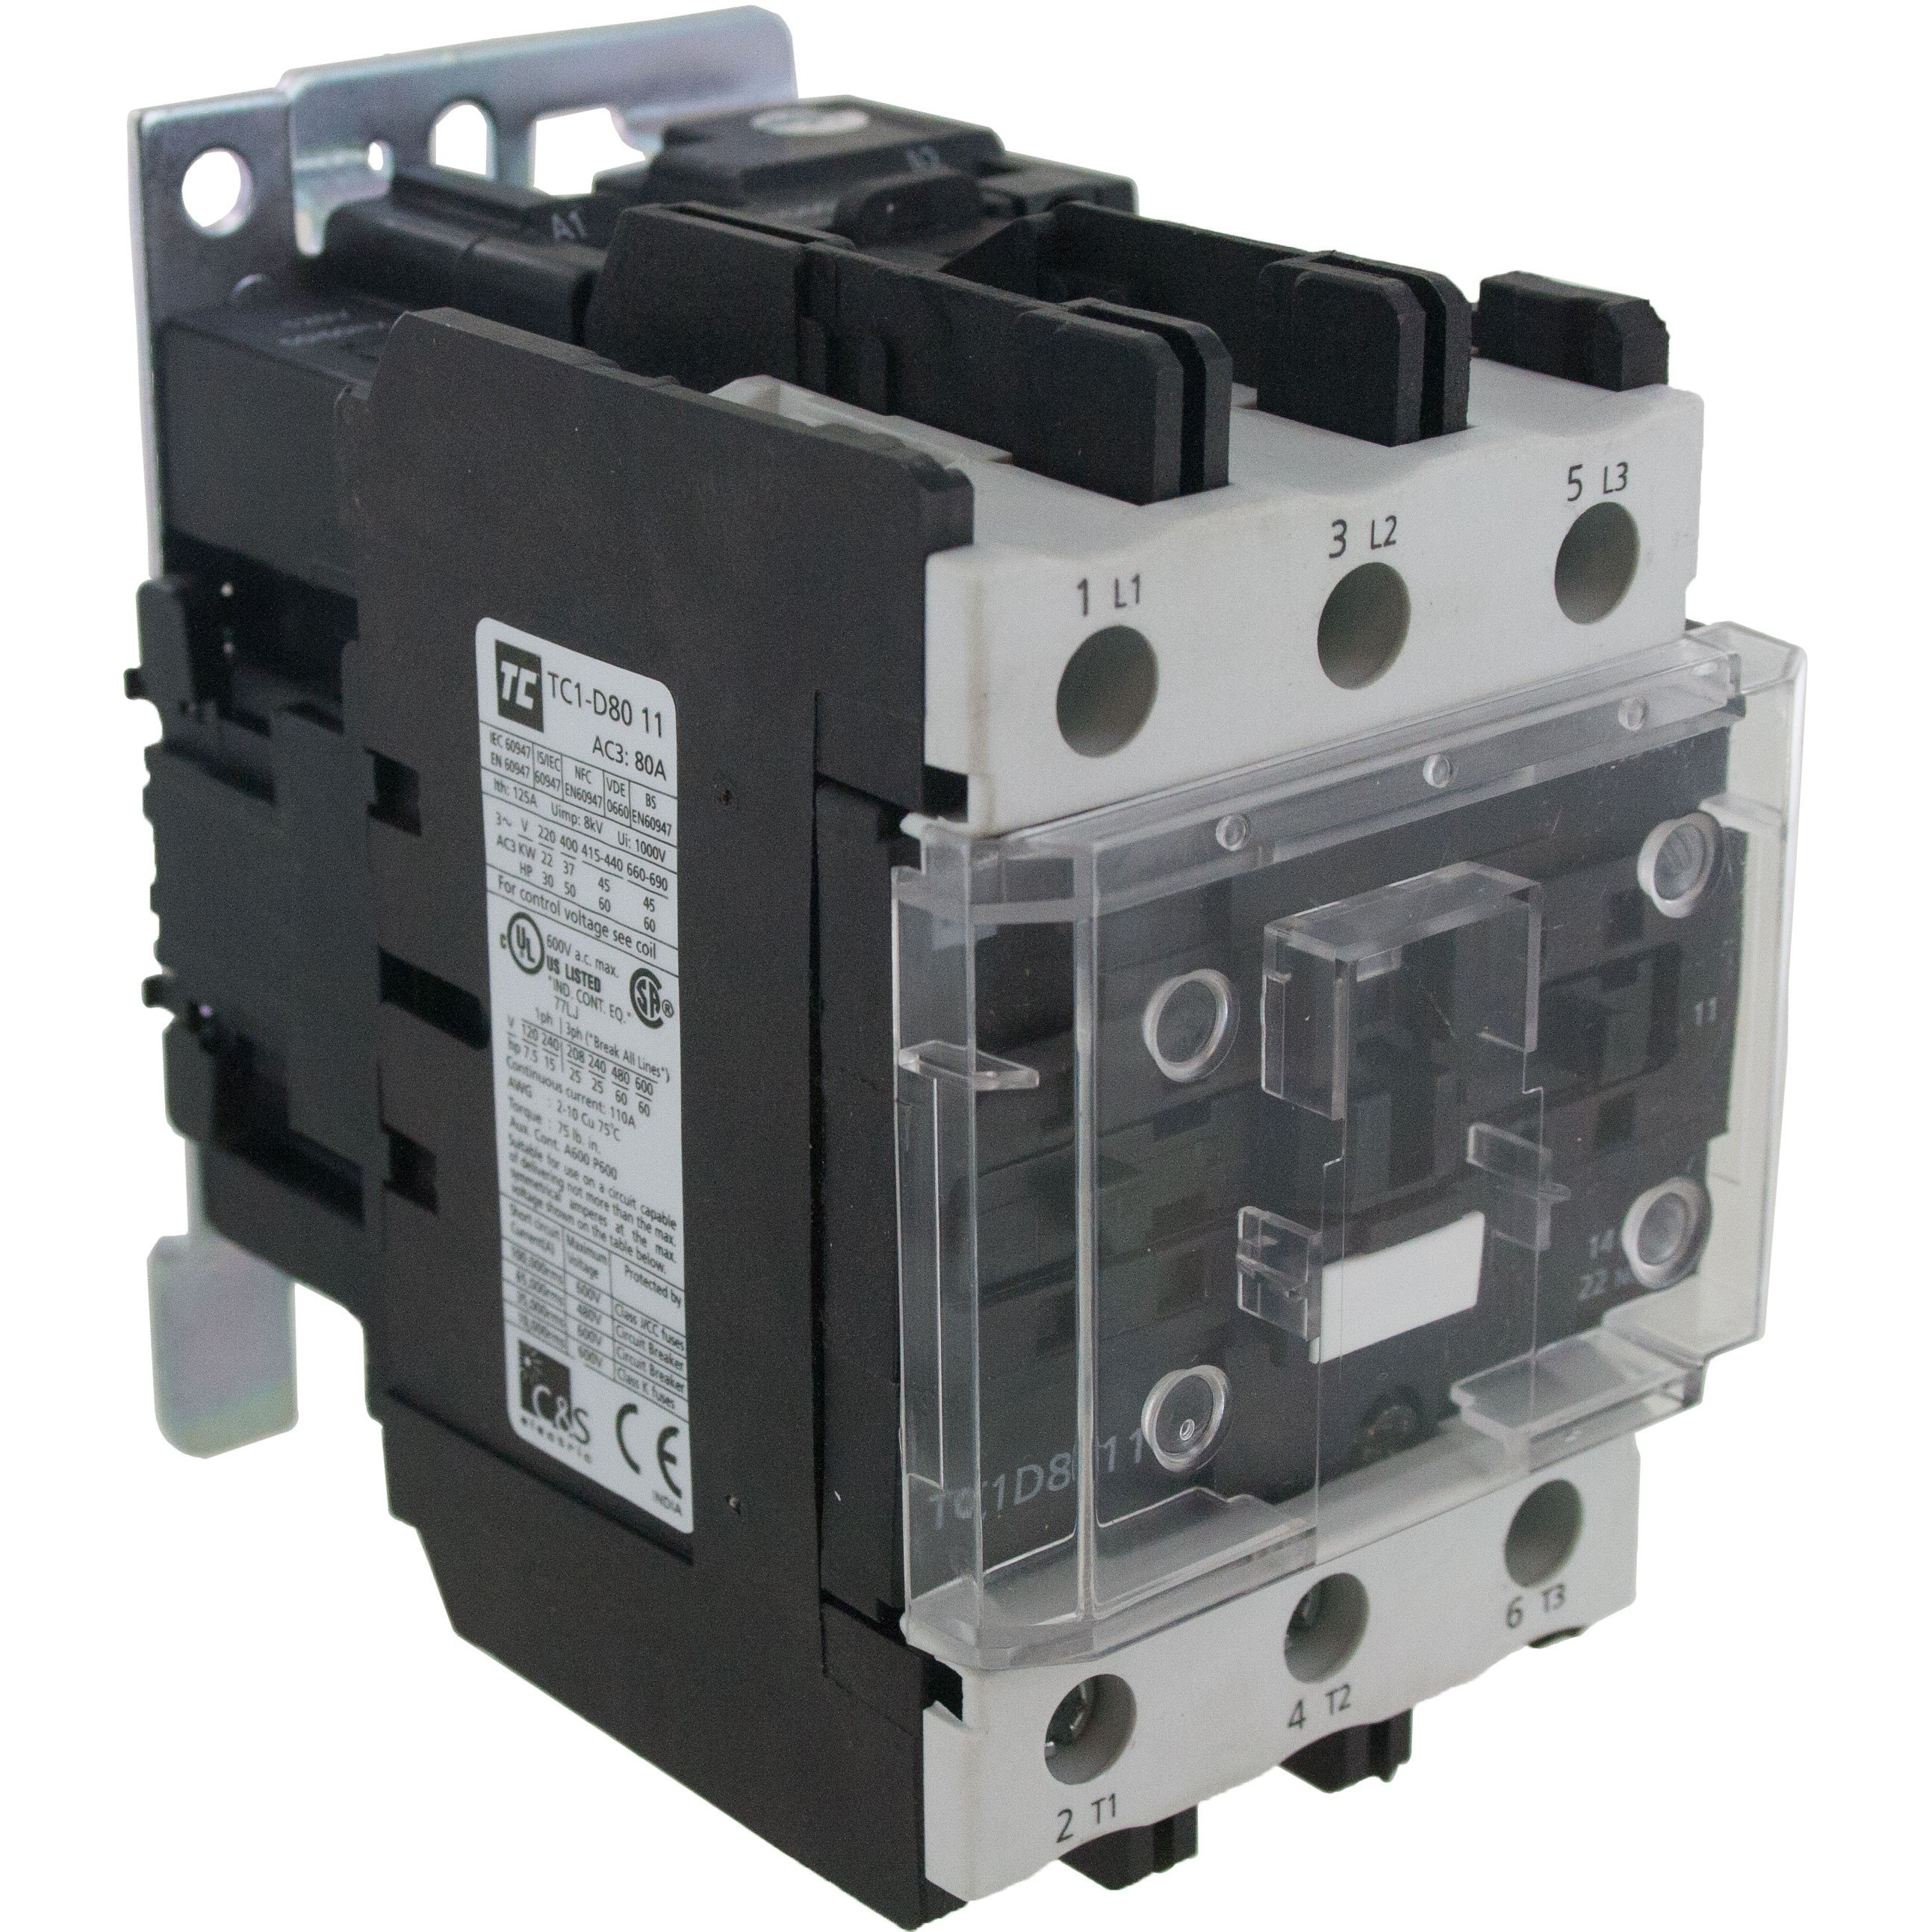 3 Pole Contactor 80 Amp 1 N/O - 1 N/C 575 Volt AC Coil Angle